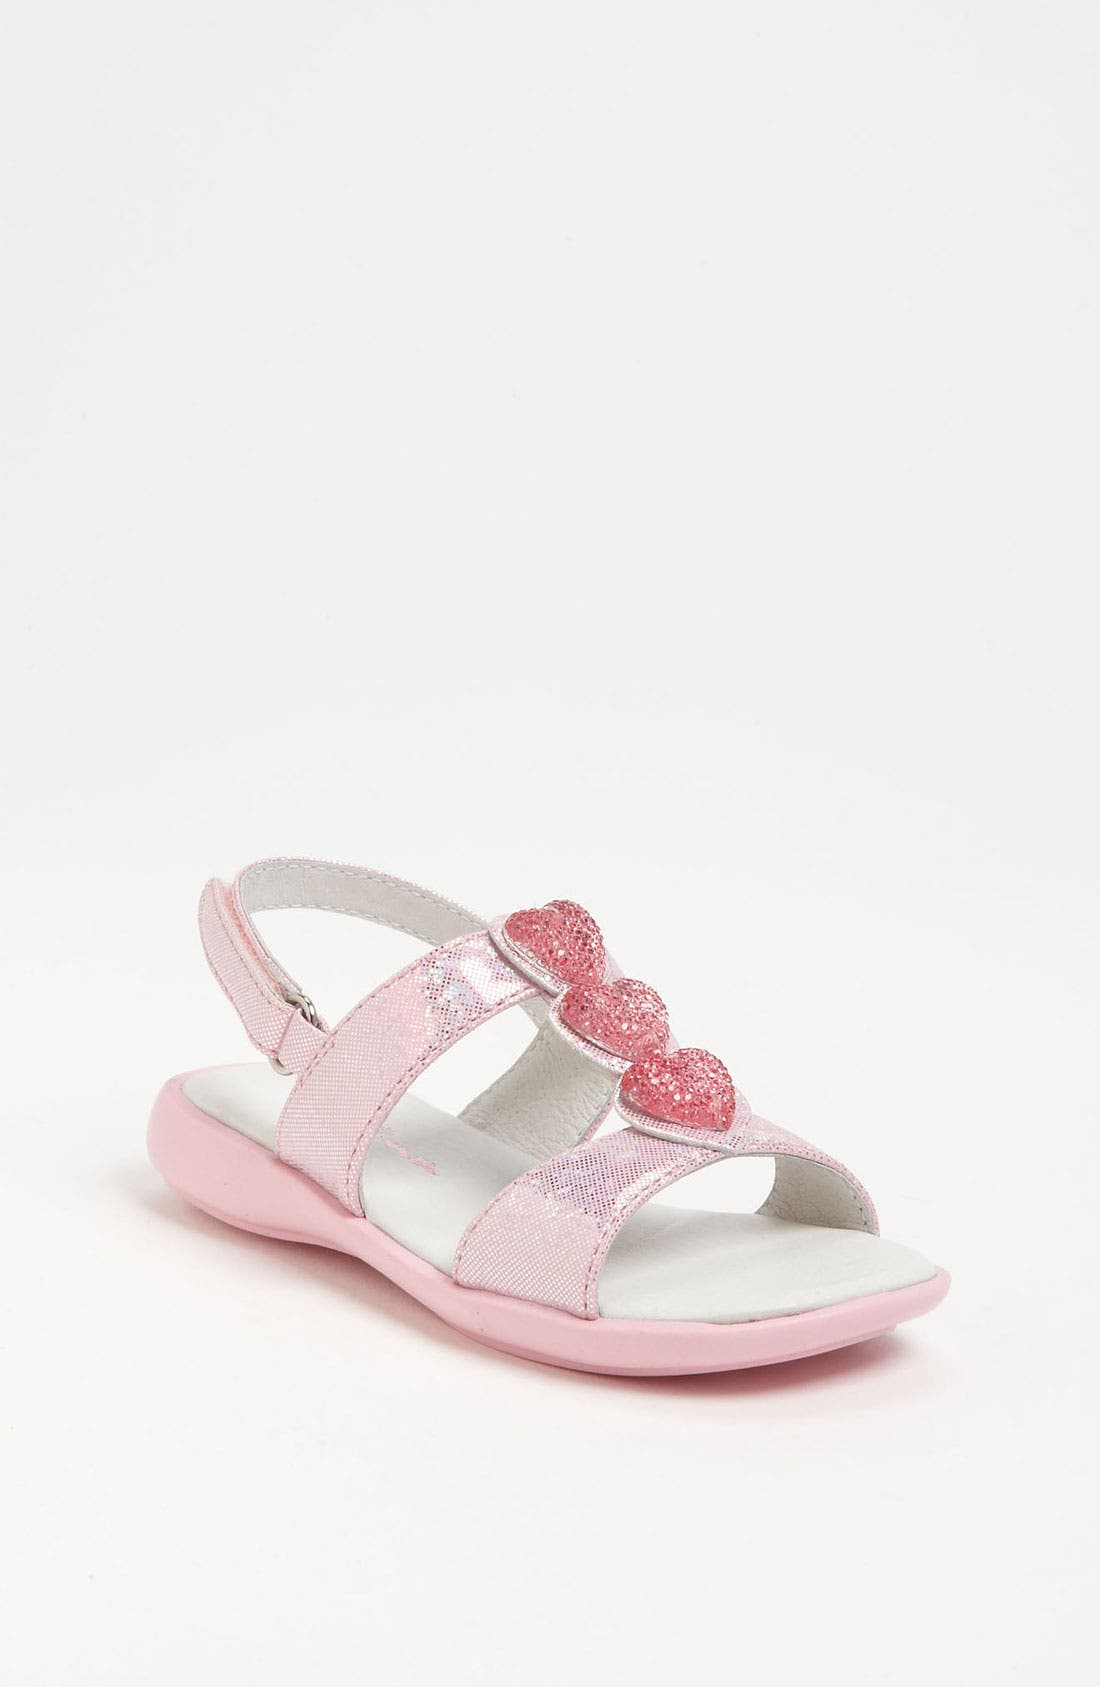 Main Image - Nina 'Clarina' Heart Sandal (Walker & Toddler)